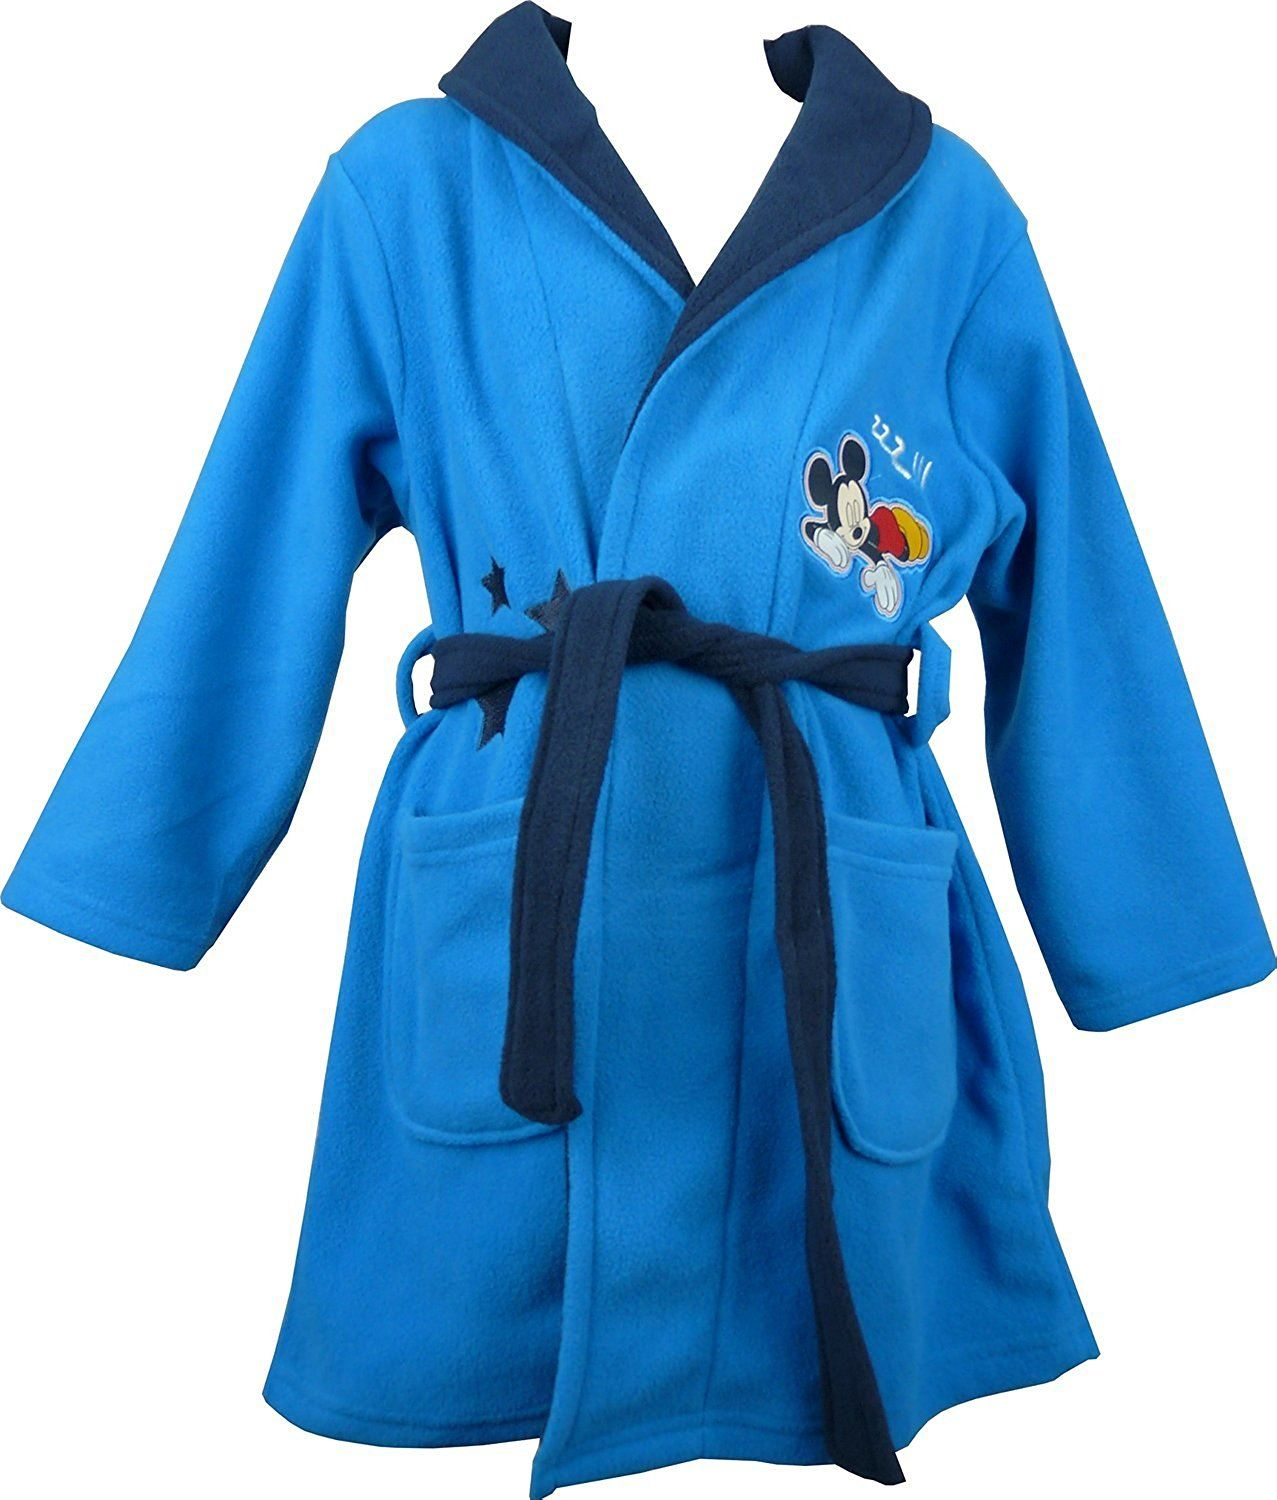 Every little mousketeer deserves to relax and snuggle up at night in the coziest robe in all of Disney! This adorable Mickey Mouse gown is made of a soft fleecy material and showcases a motif of Mikey and cute 3D ears on the hood. With super handy pockets and tie belt fastening this dressing gown .